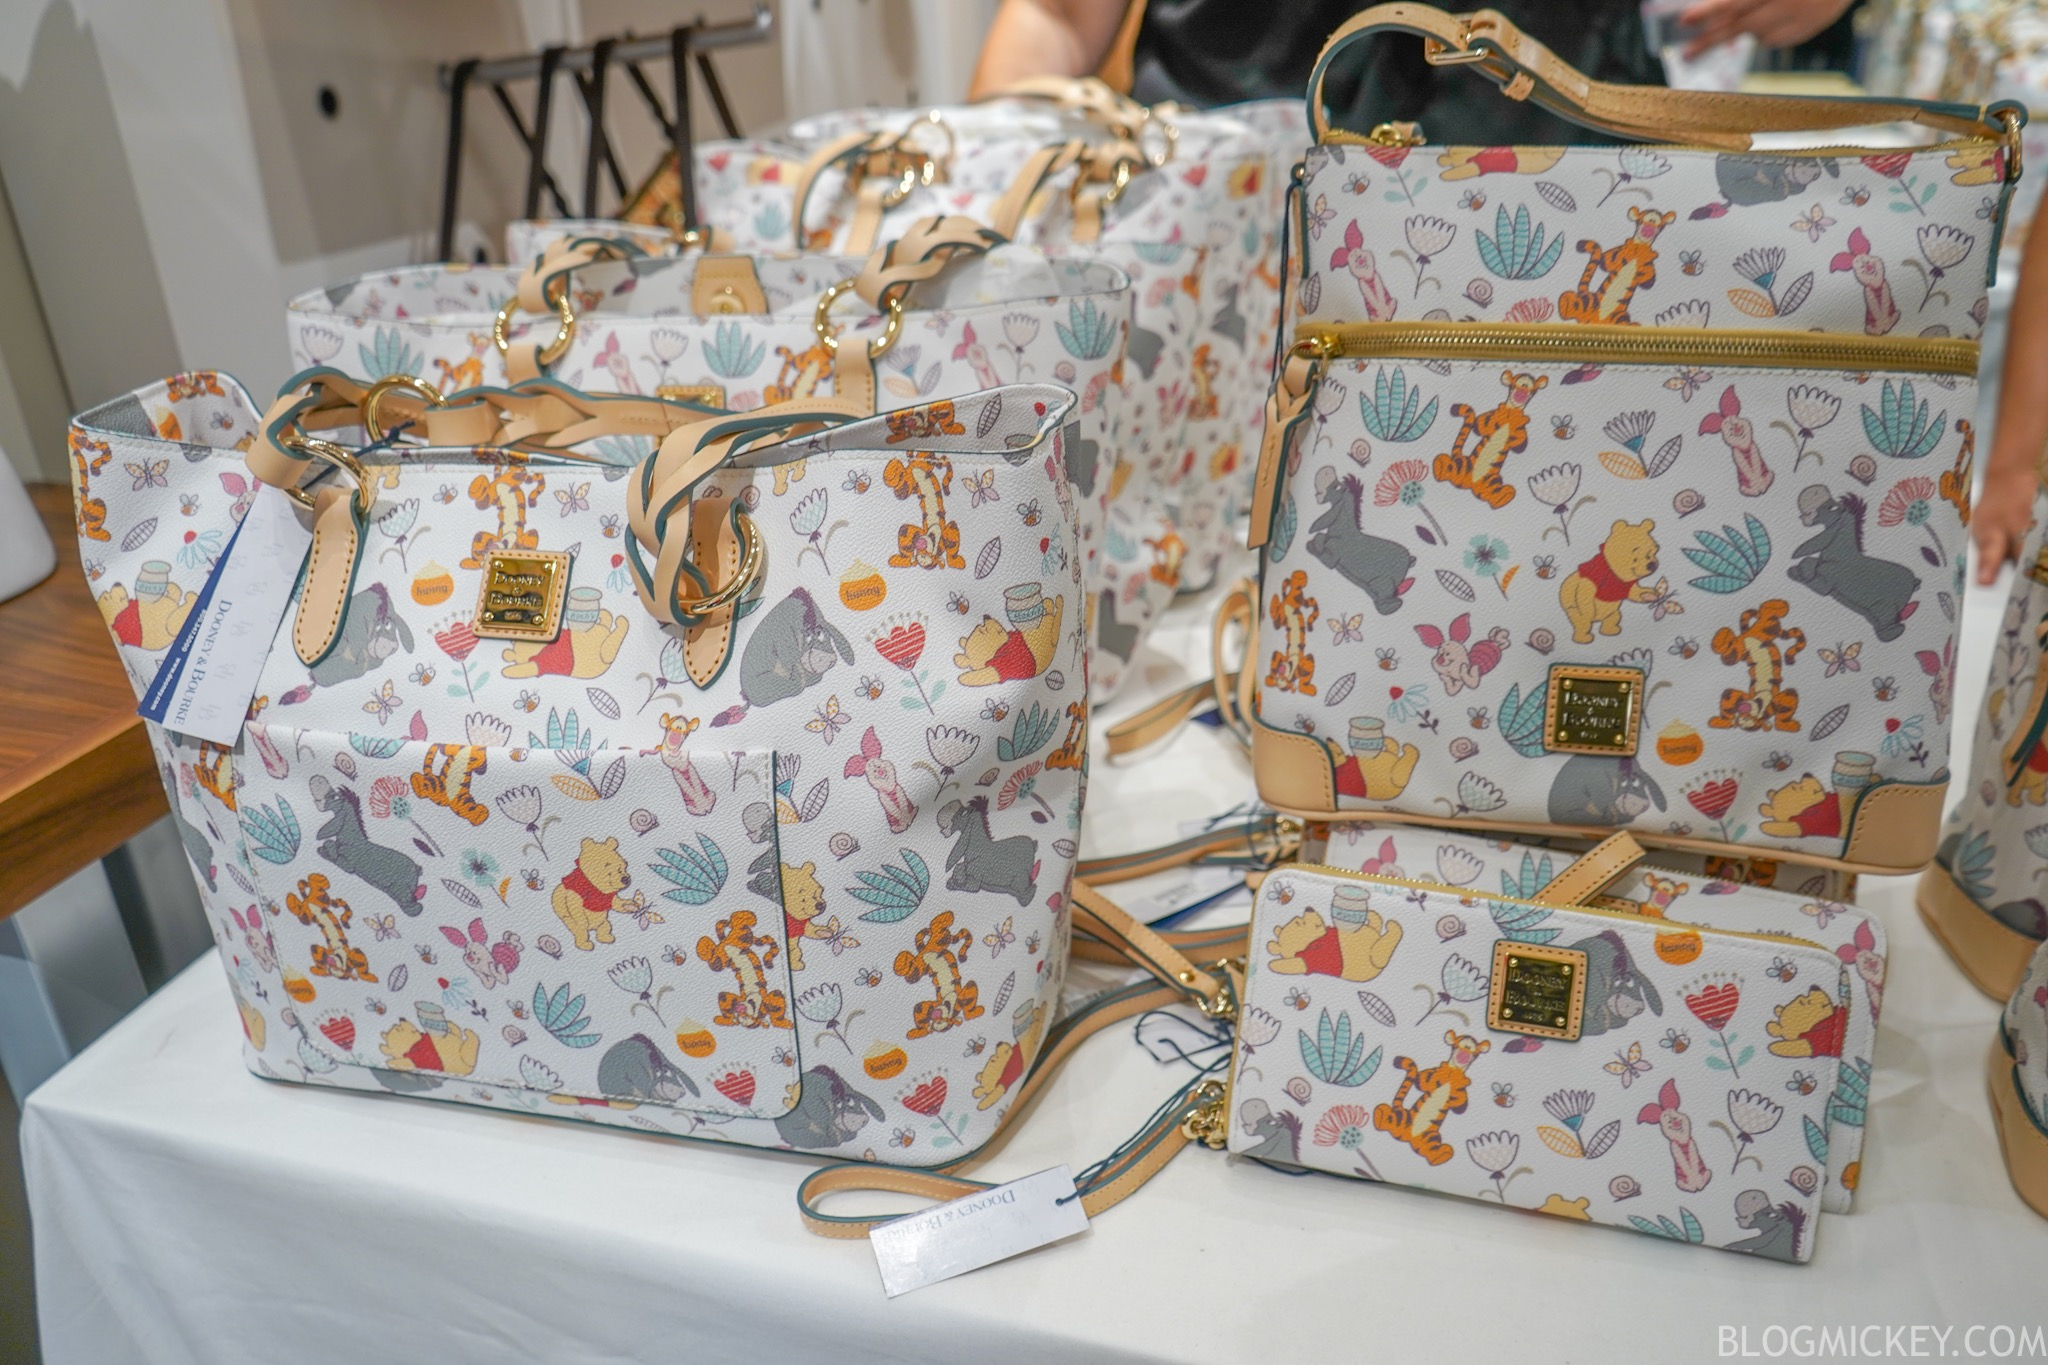 ce063fd4cecd New Winnie the Pooh Dooney and Bourke Handbags Arrive at Walt Disney World